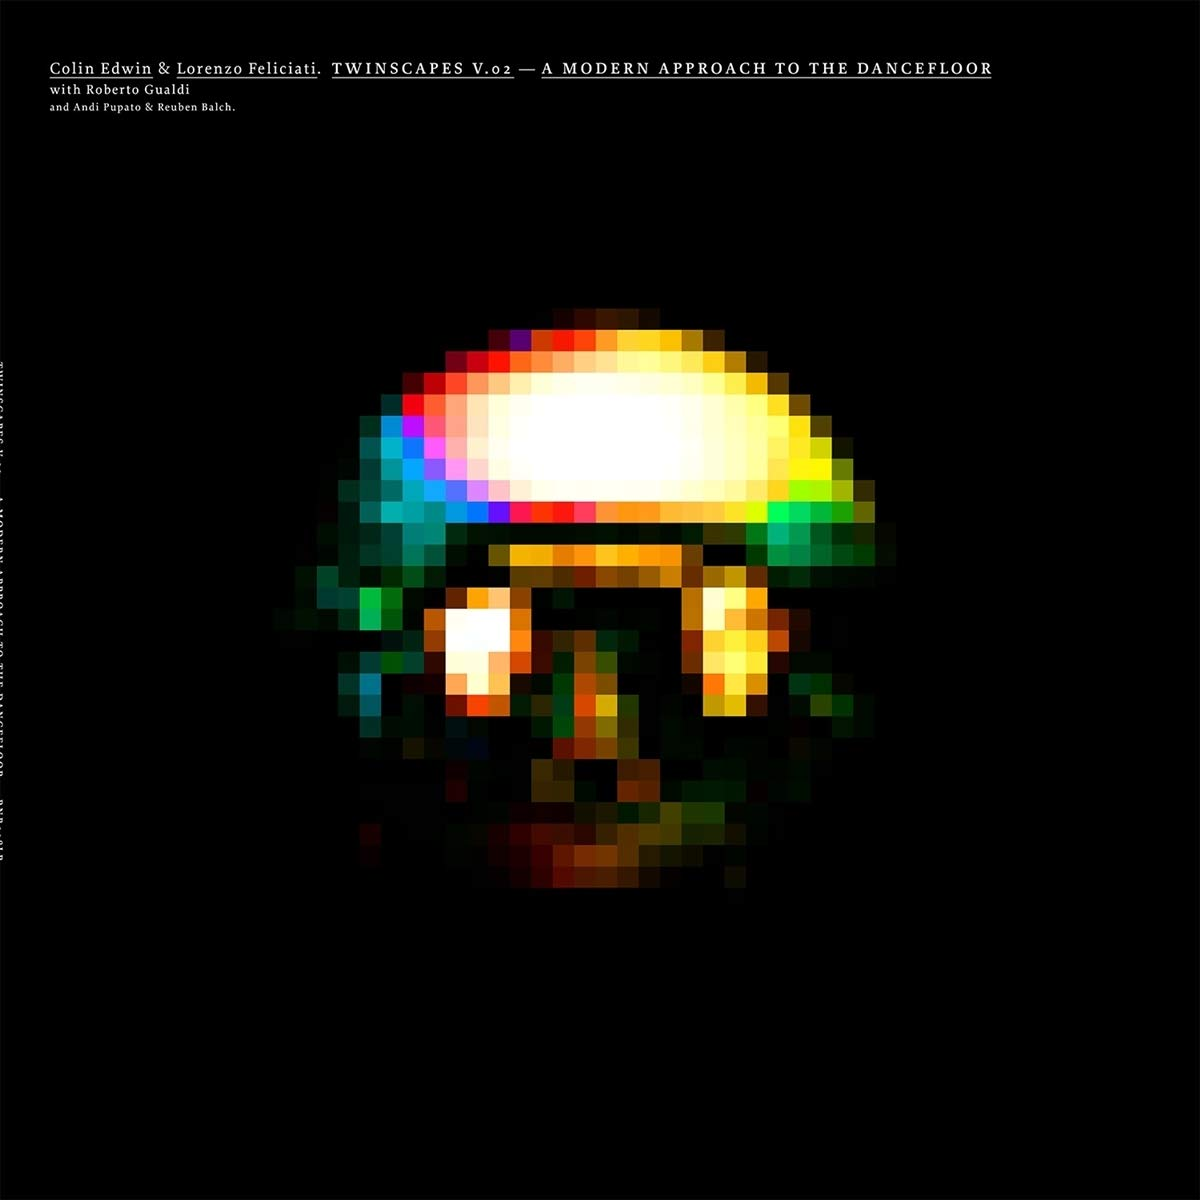 Lorenzo / Edwin, Colin Feliciati - Twinscapes Vol. 2: A Modern Approach To The Dancefloor